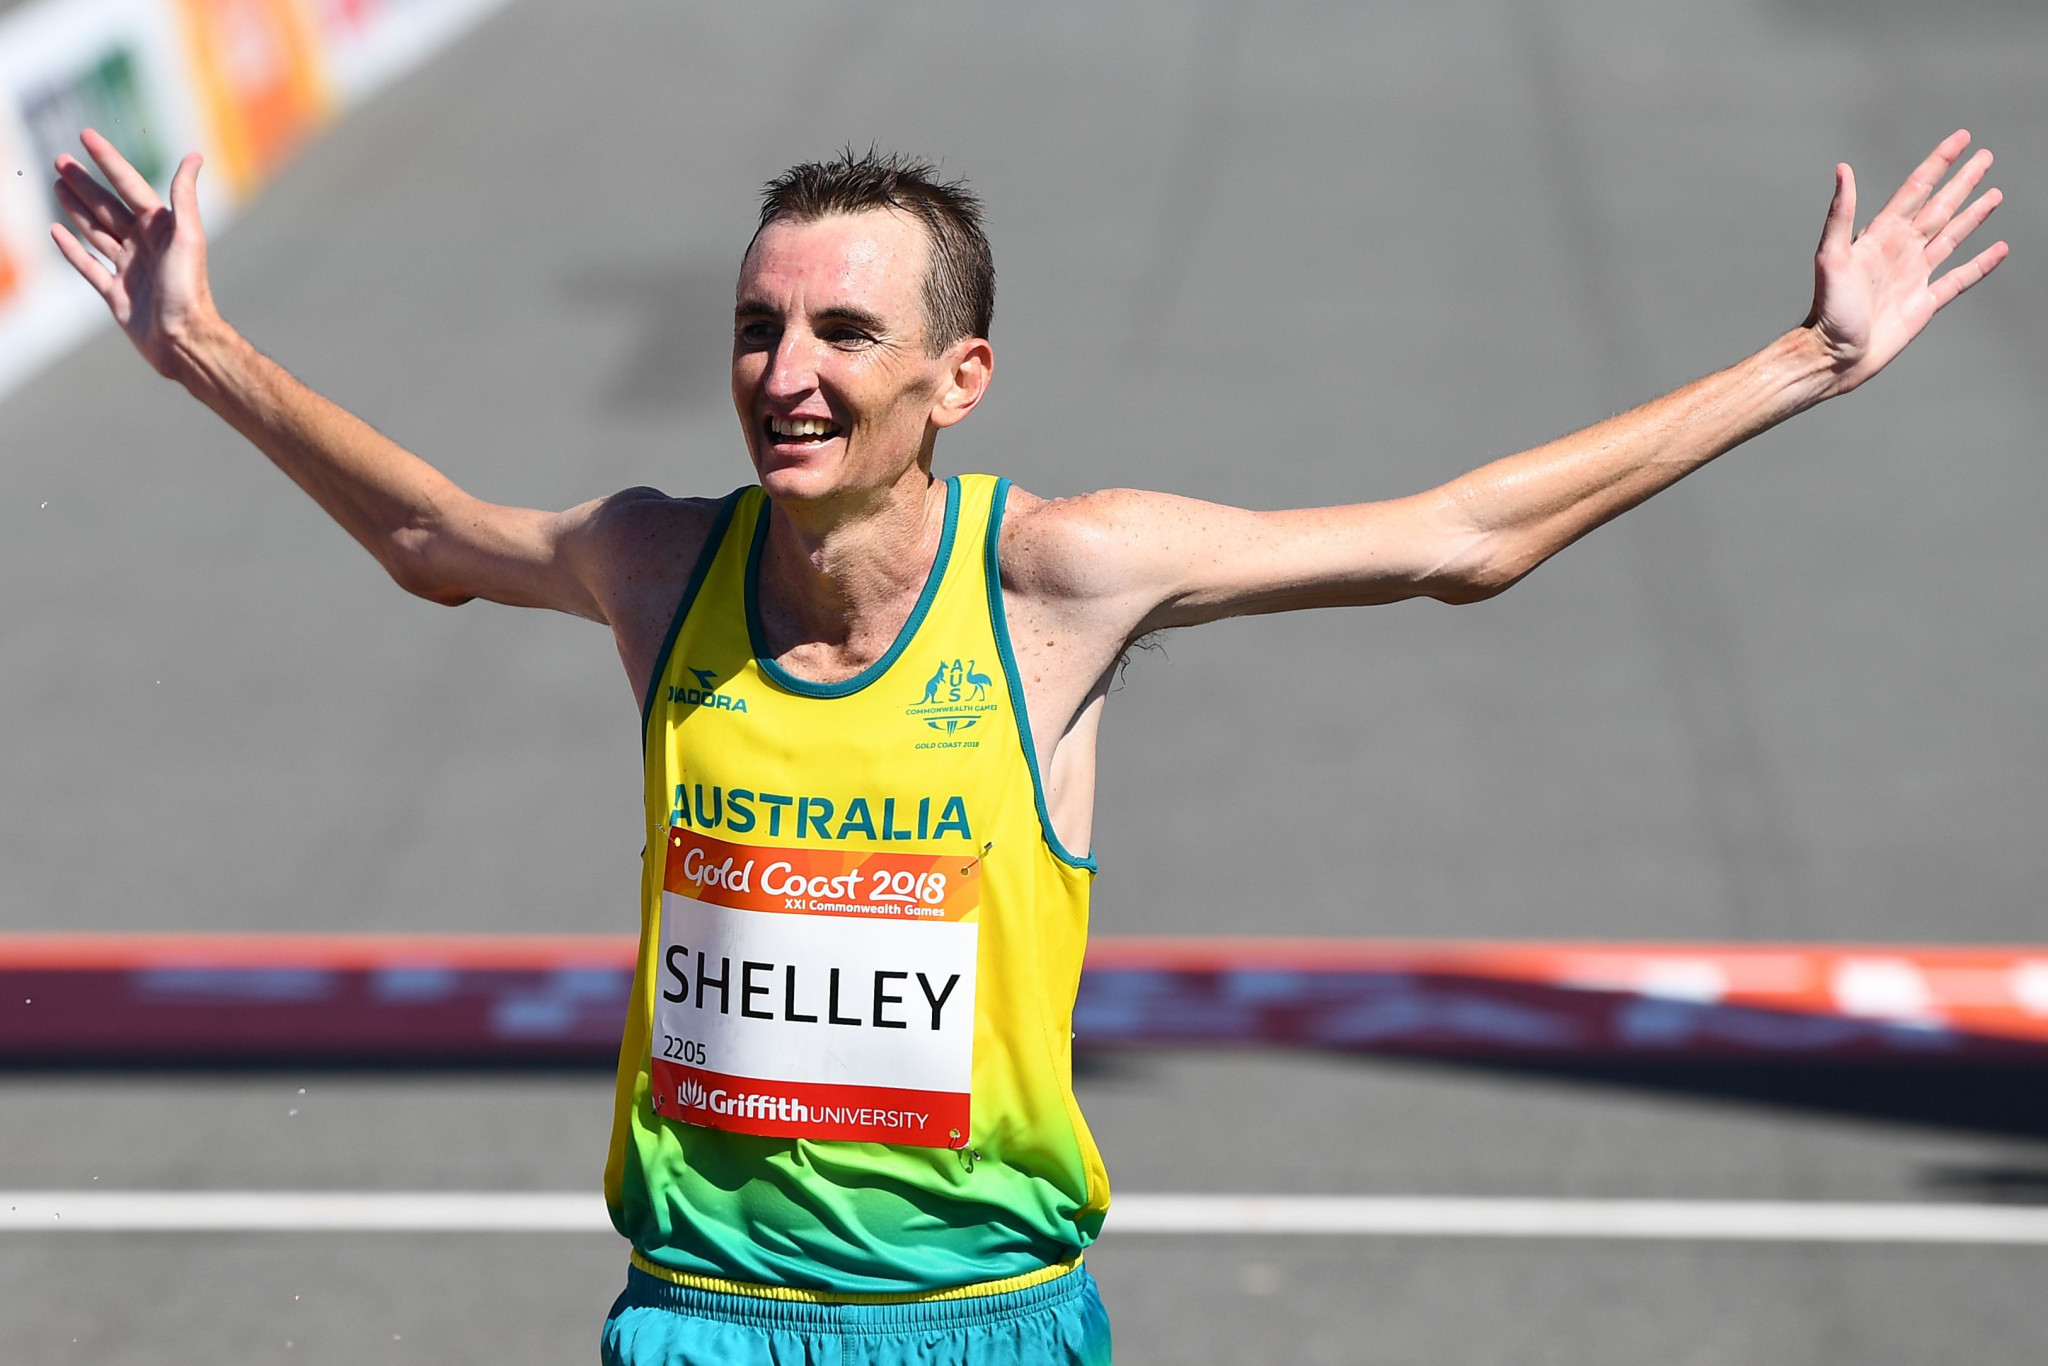 Michael Shelley has had online abuse in the aftermath of his Gold Coast marathon win ©Getty Images